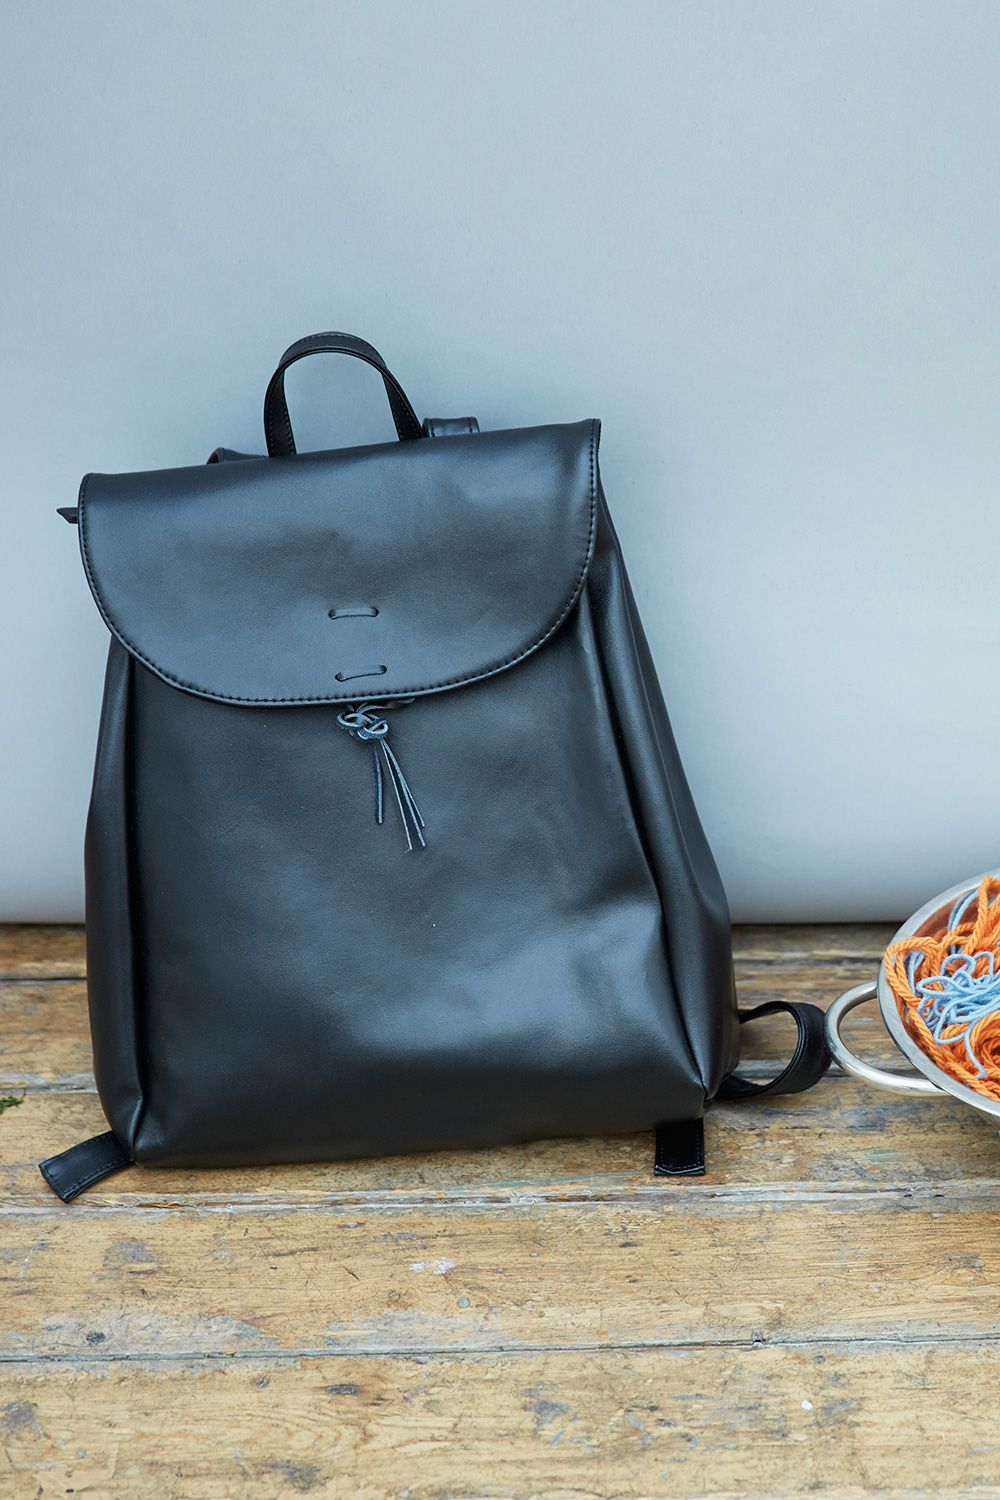 Leather Vintage Style Backpack Black http://bit.ly/1F7Xmdl